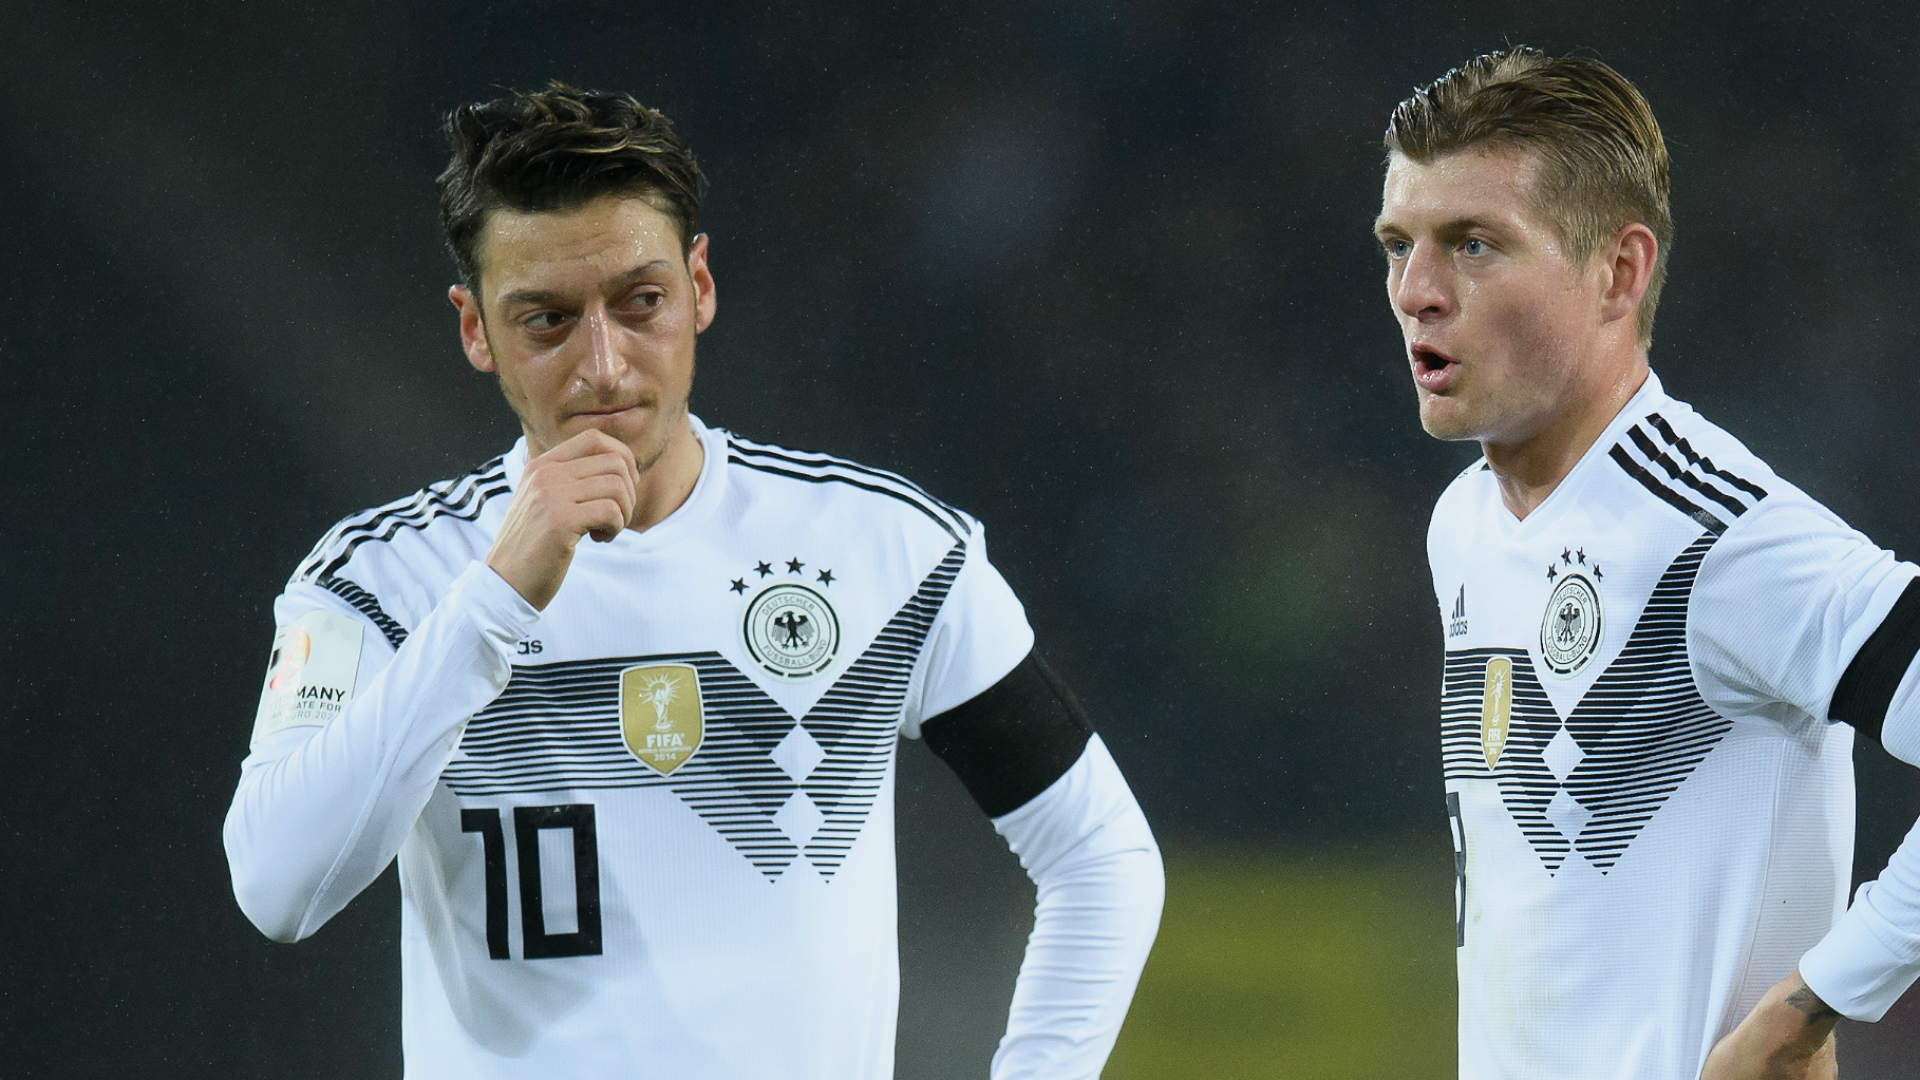 Naive or scheming - Ozil's agent slams Kroos, Neuer and Muller